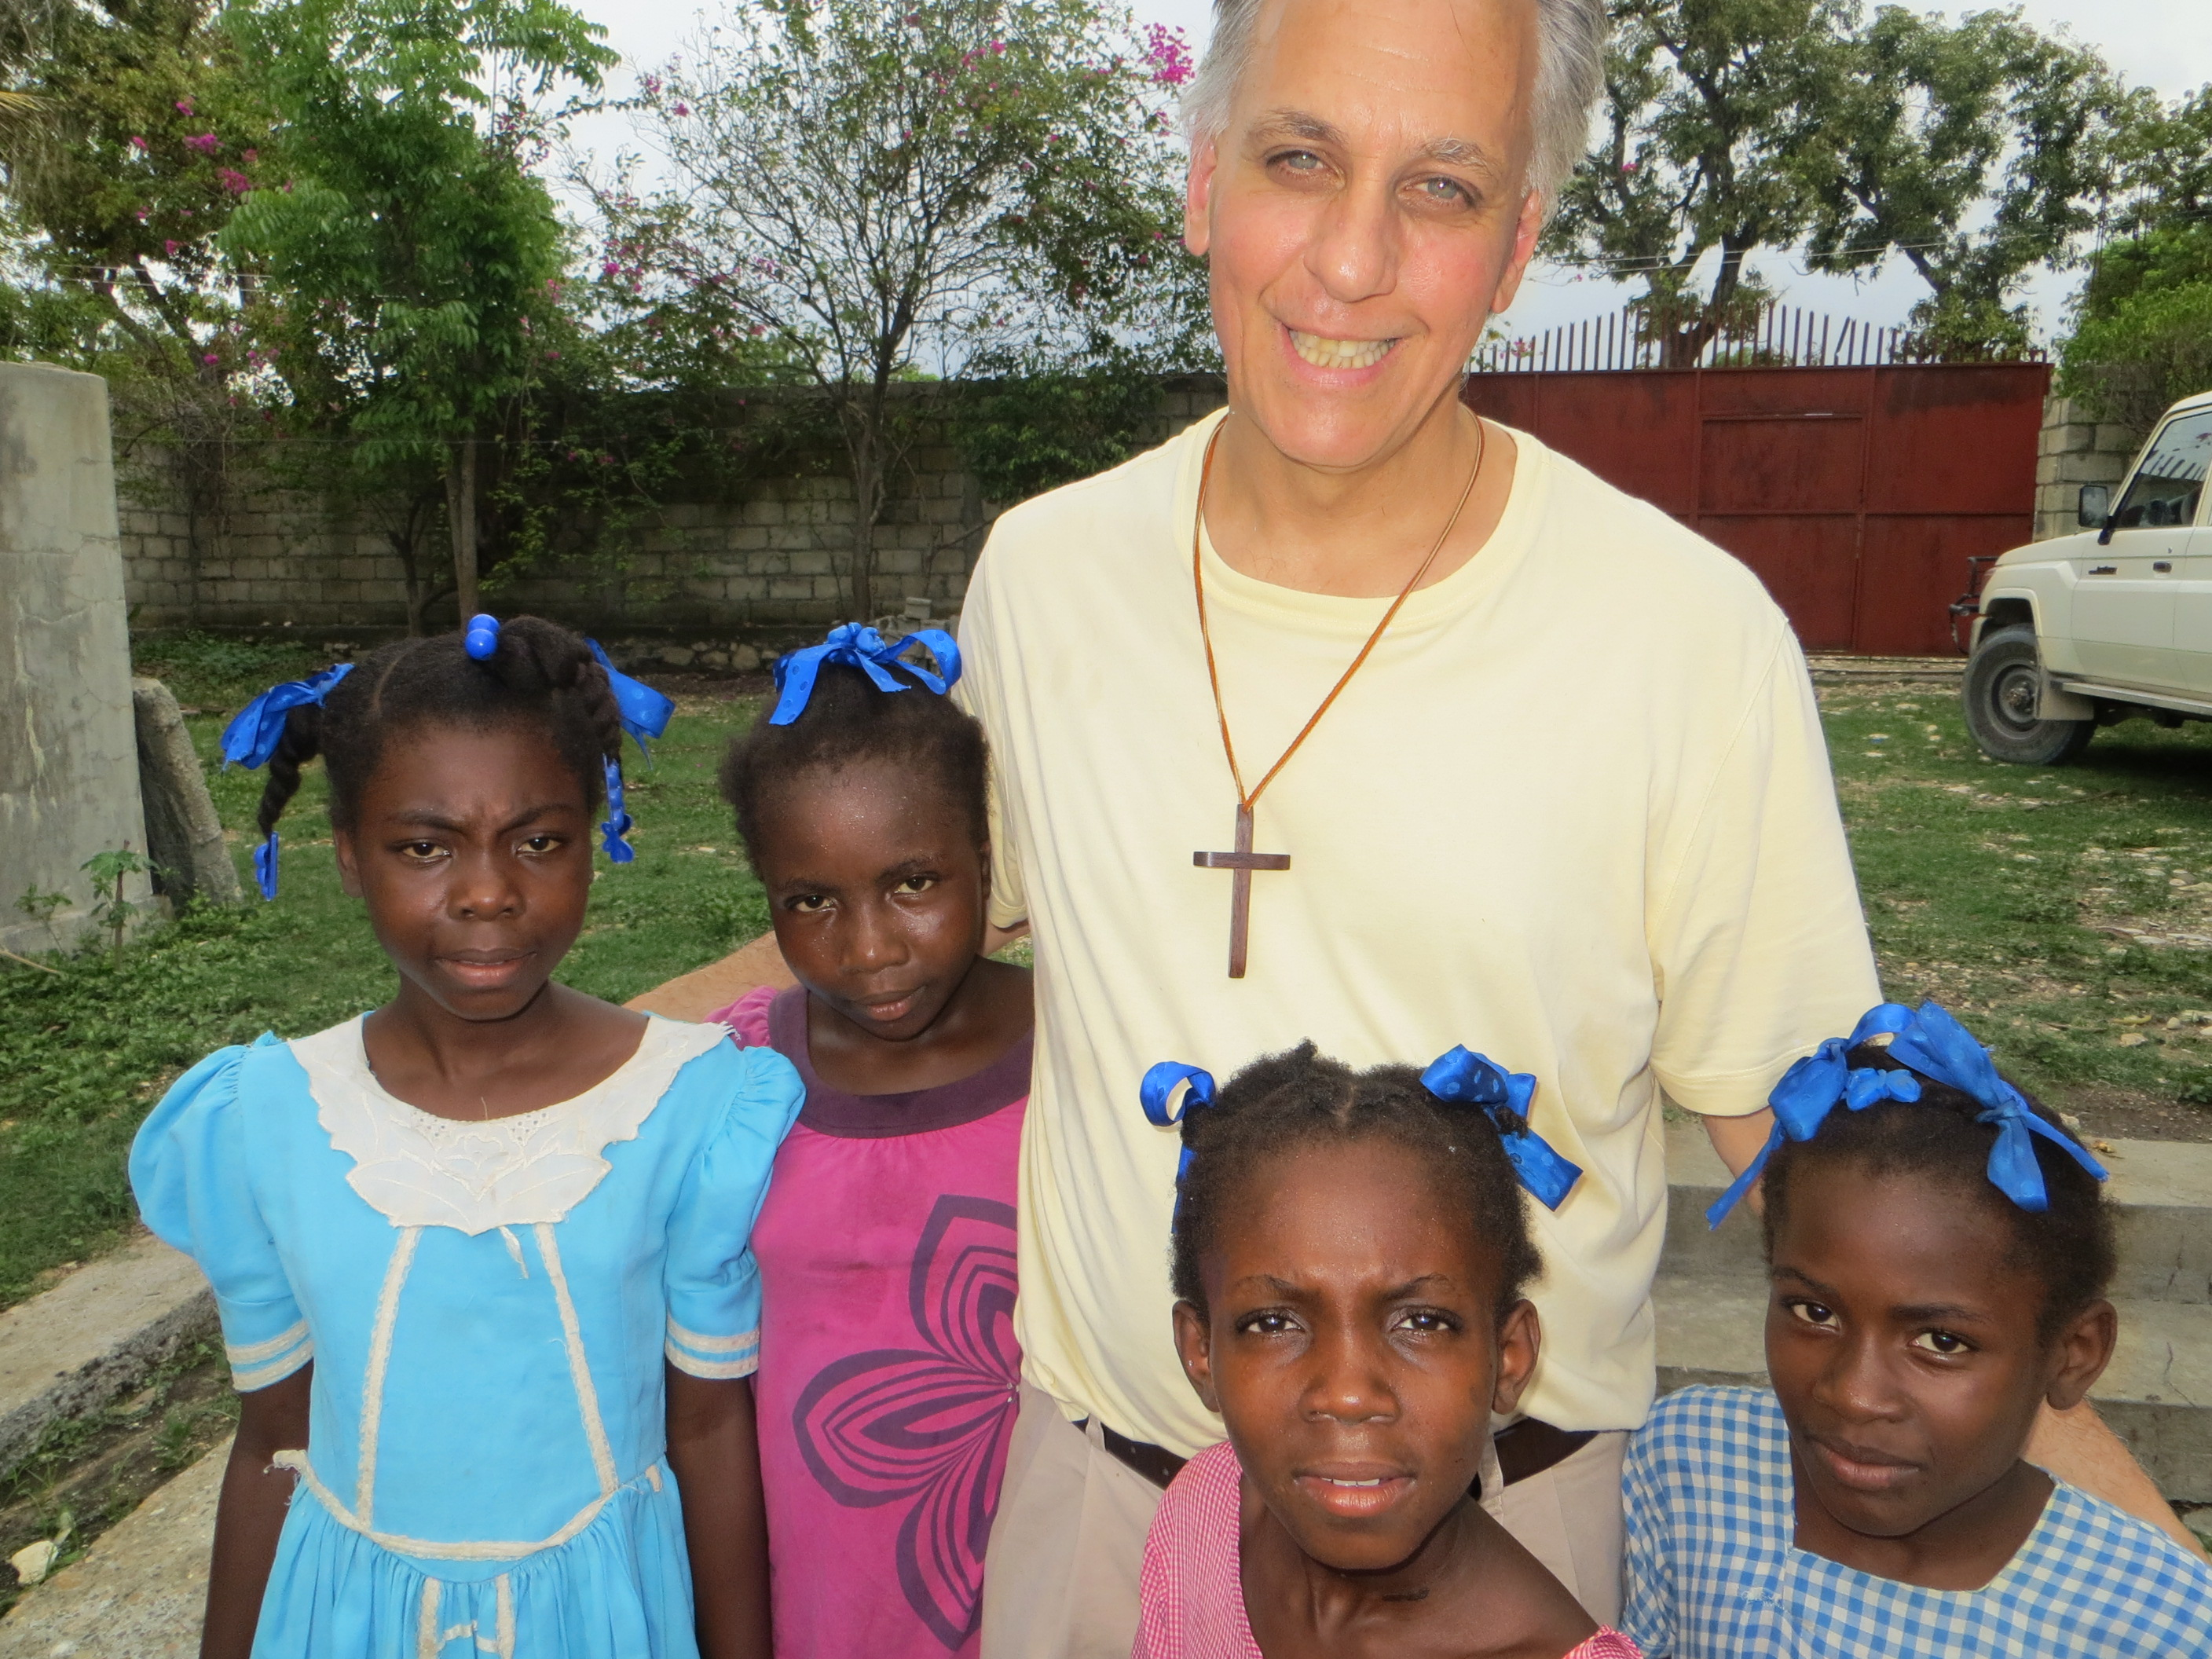 Fr. LoBianco with children from CARITAS child sponsorship programs